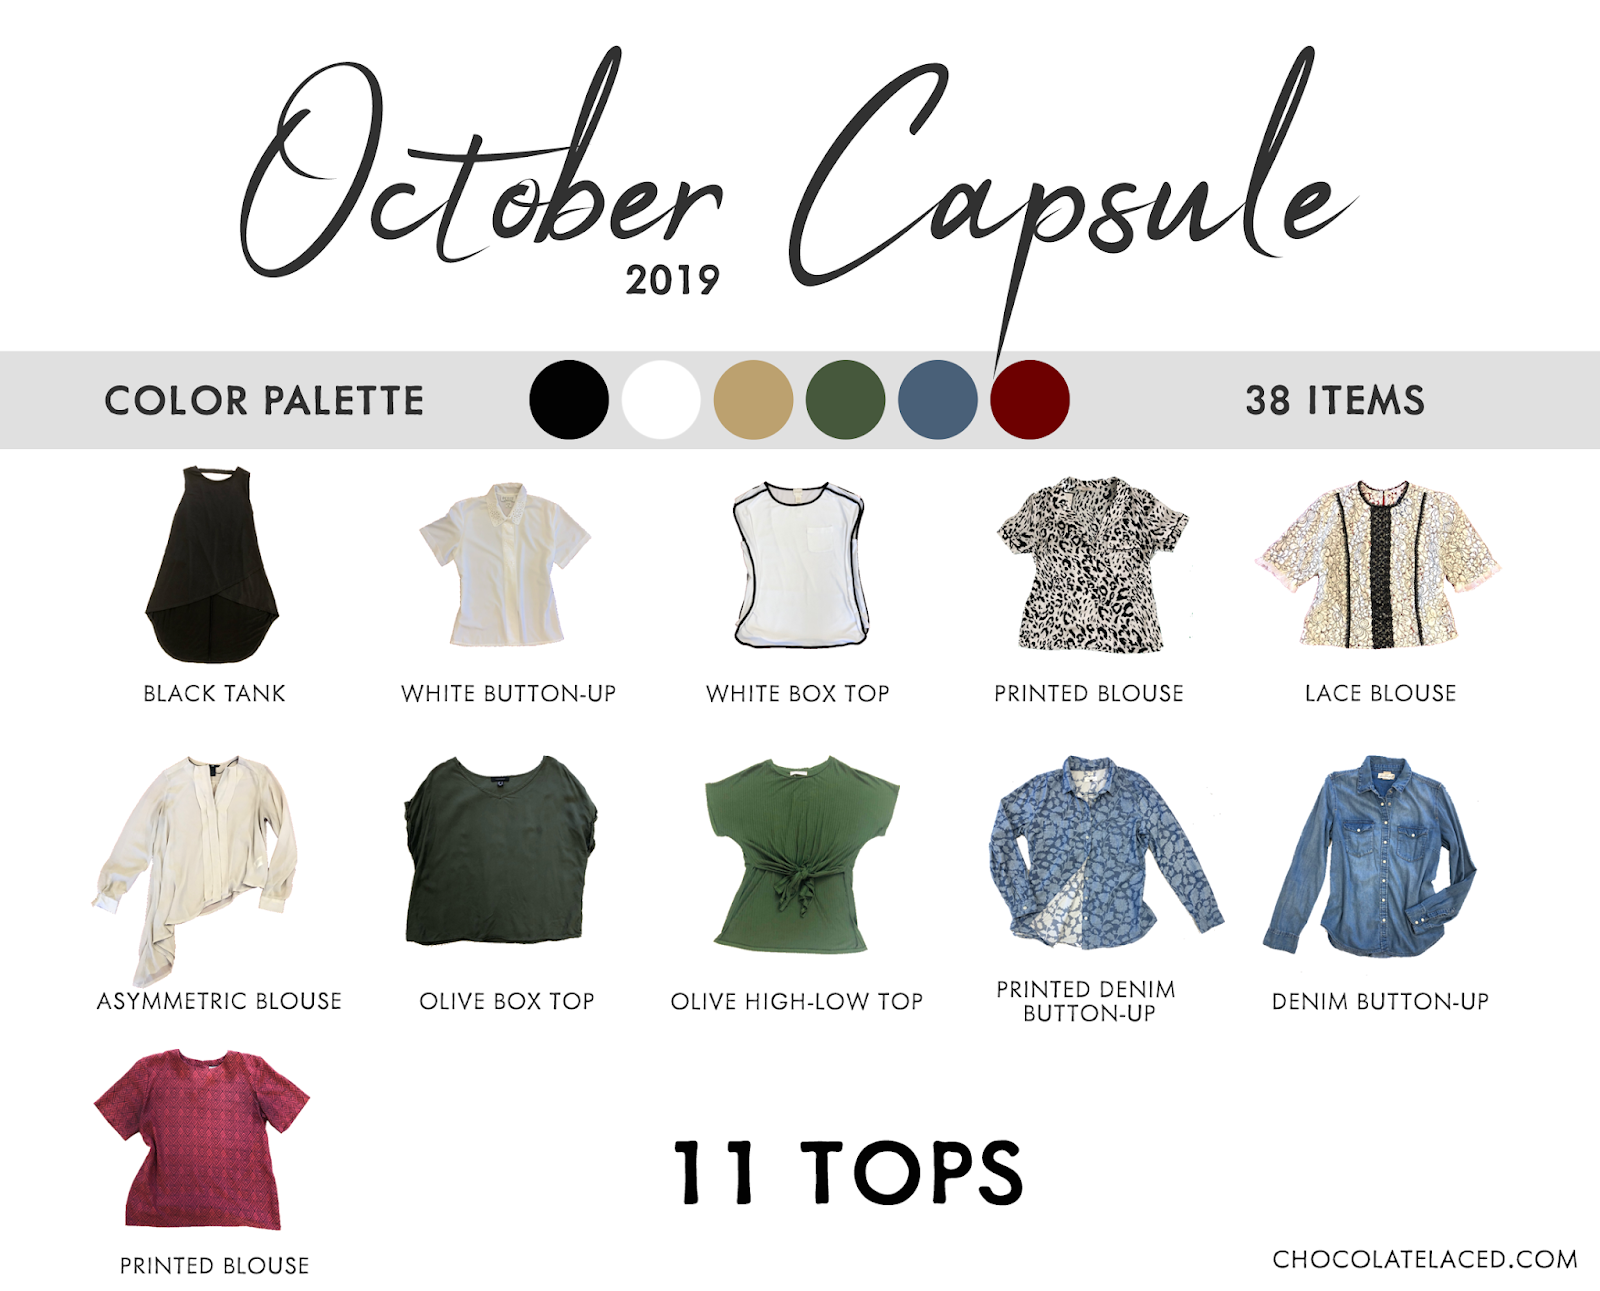 October capsule closet tops